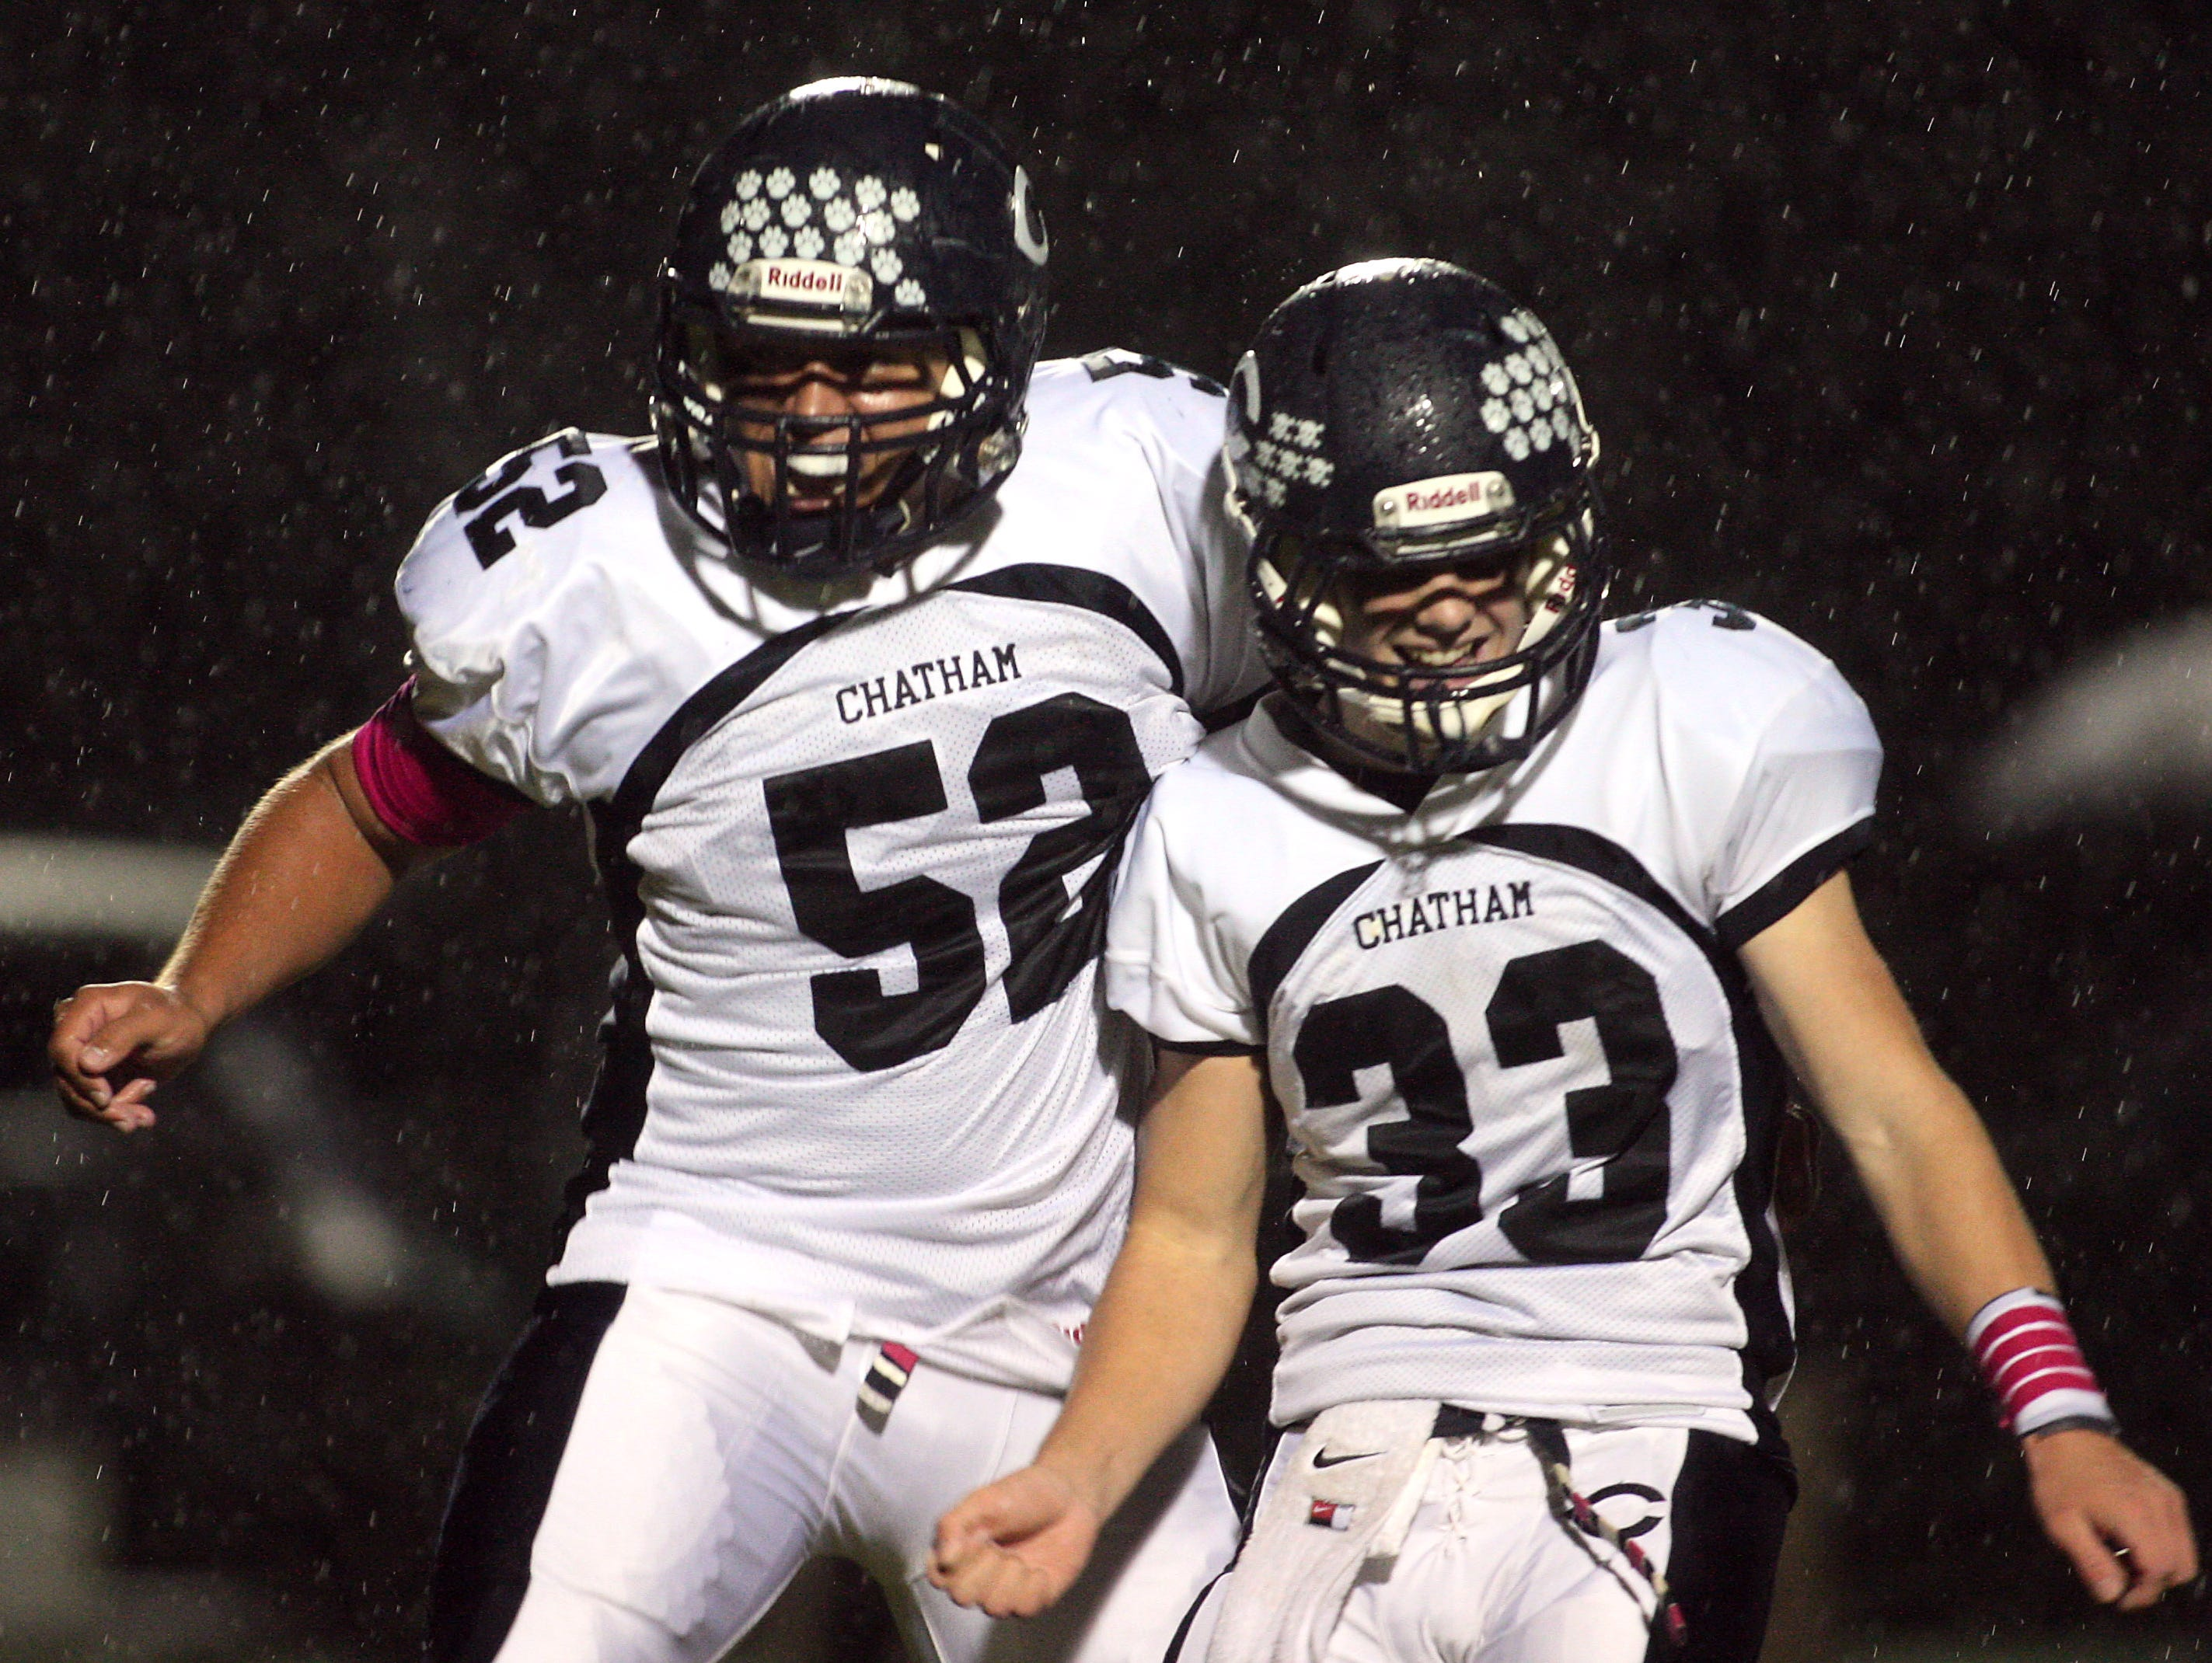 Linebacker Nick Zack, l, and Justin Hayes celebrates a Chatham safety vs. Montville during their Friday night football matchup. October 2, 2015, Montville, NJ.